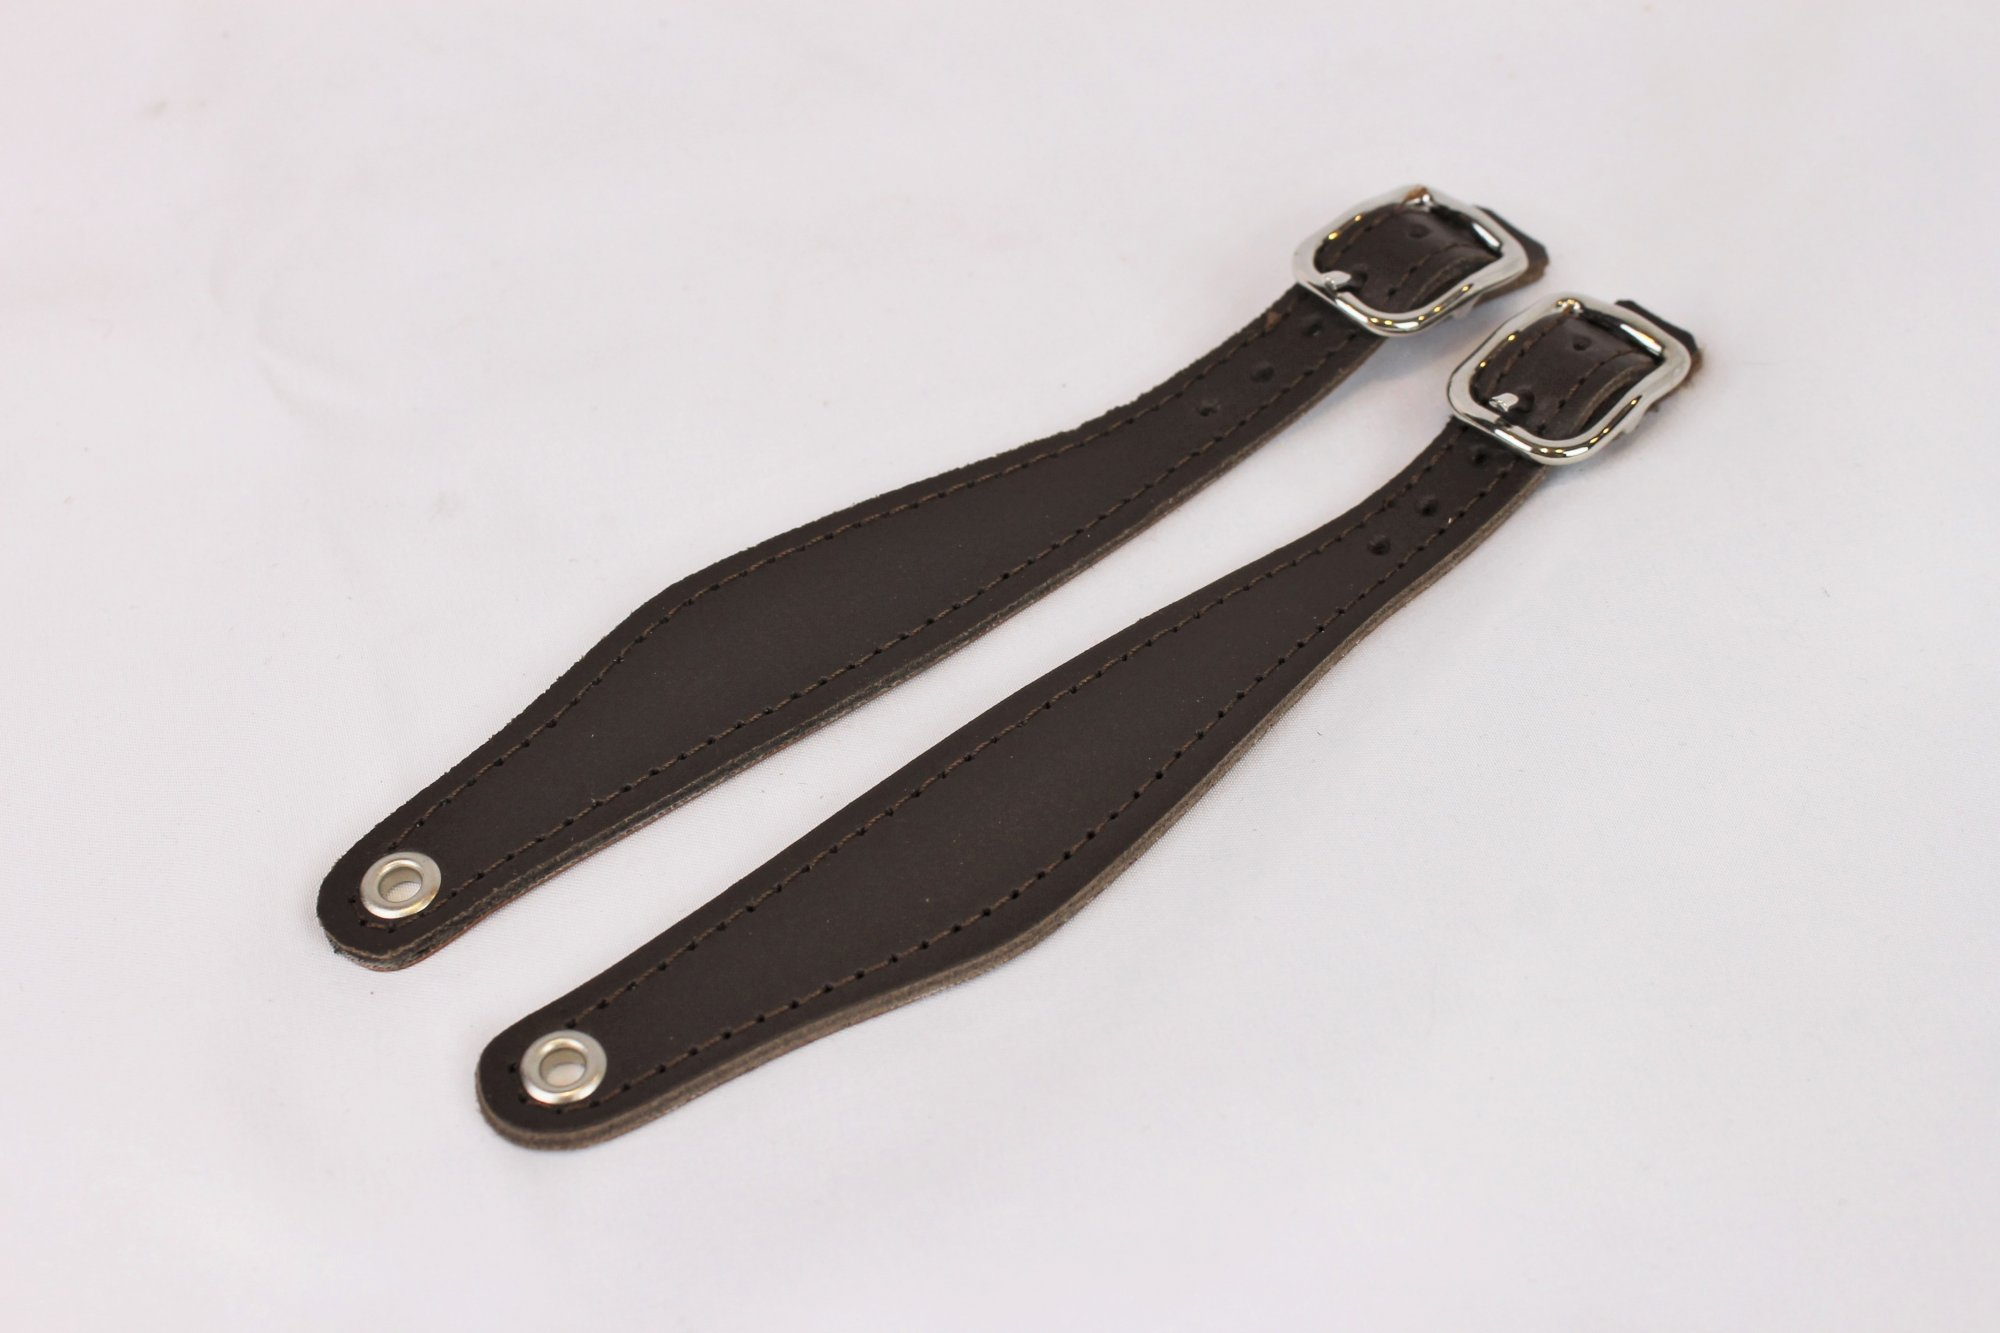 NEW Brown Leather Bandoneon Hand Strap - Pair of 2 Pieces